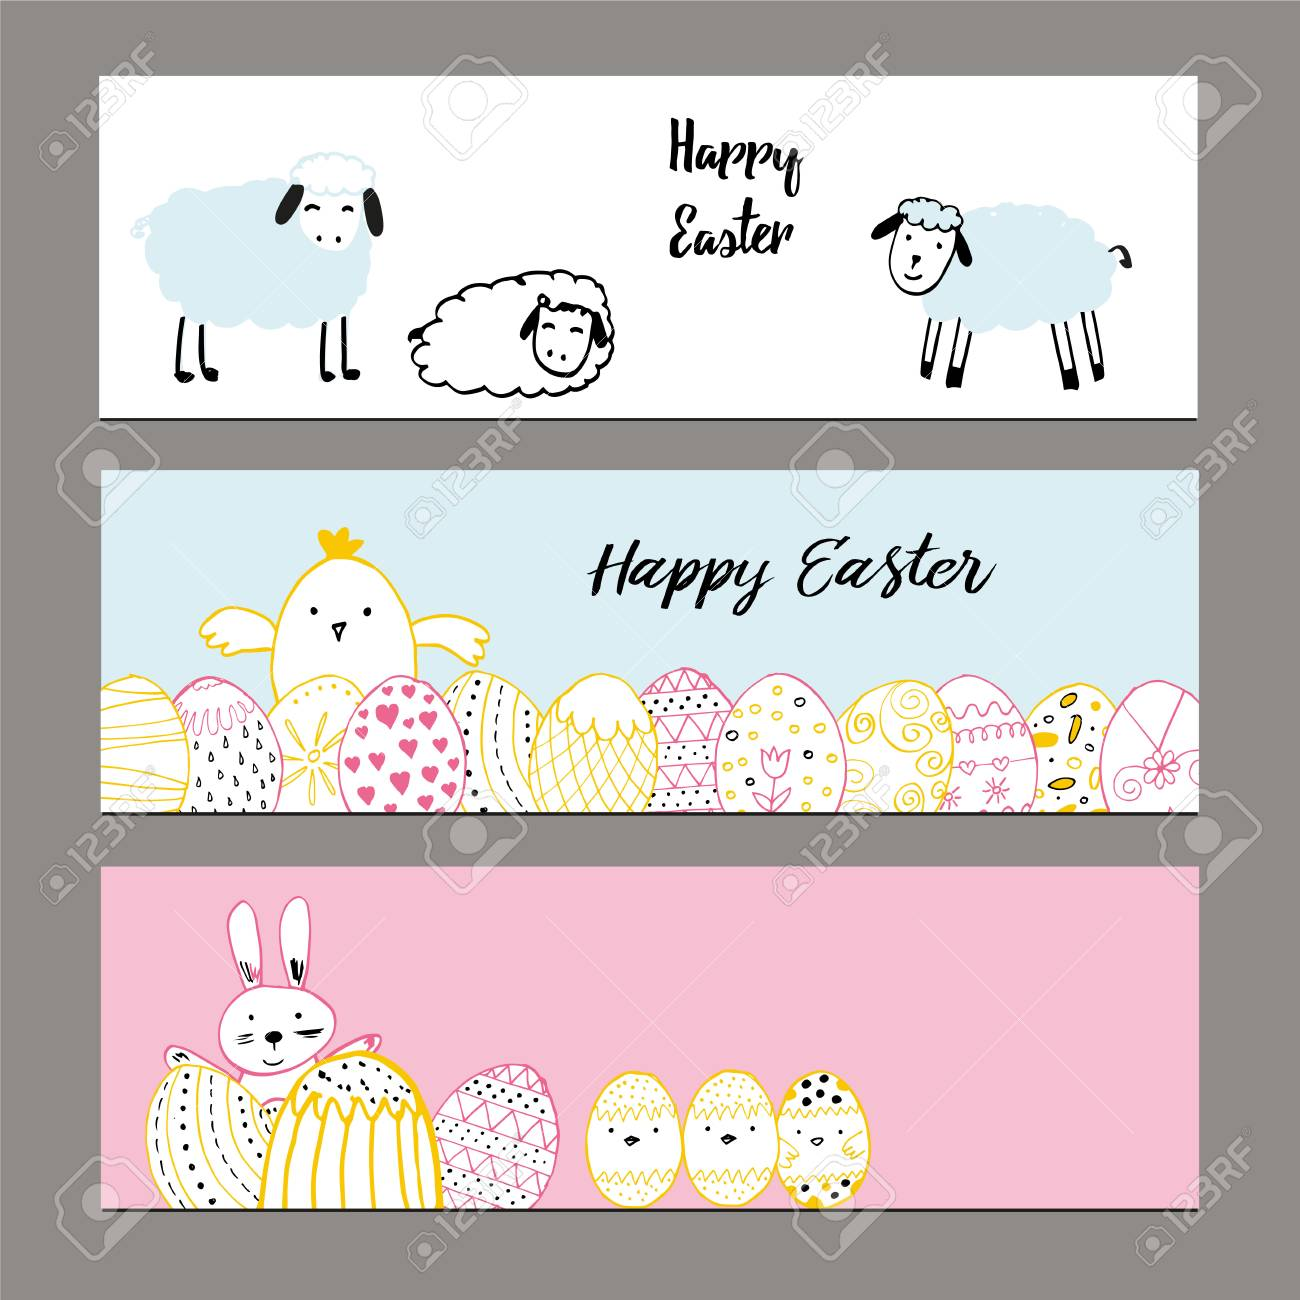 cute banners with hand drawn easter illustrations royalty free